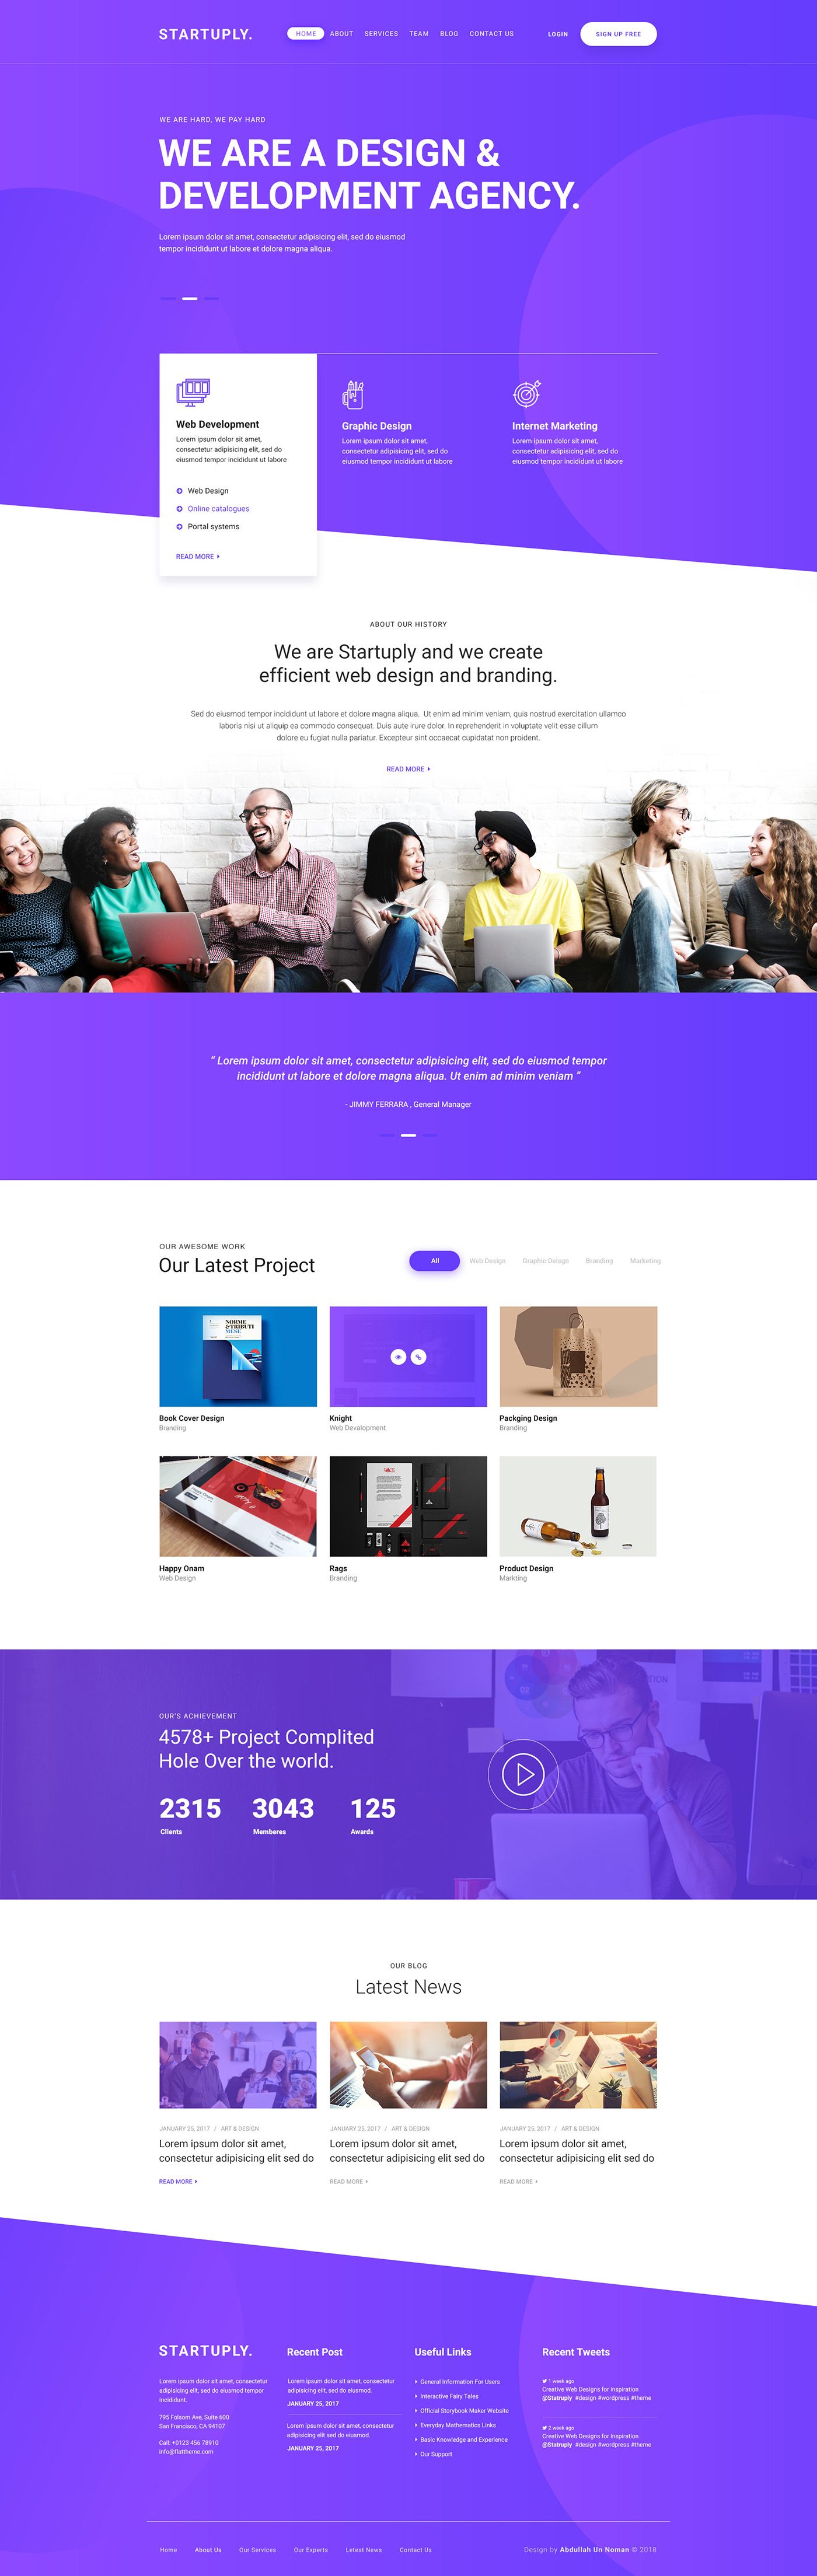 Startuply Agency Landing Page - Clean and beautiful landing page, designed by Abdullah Un Noman